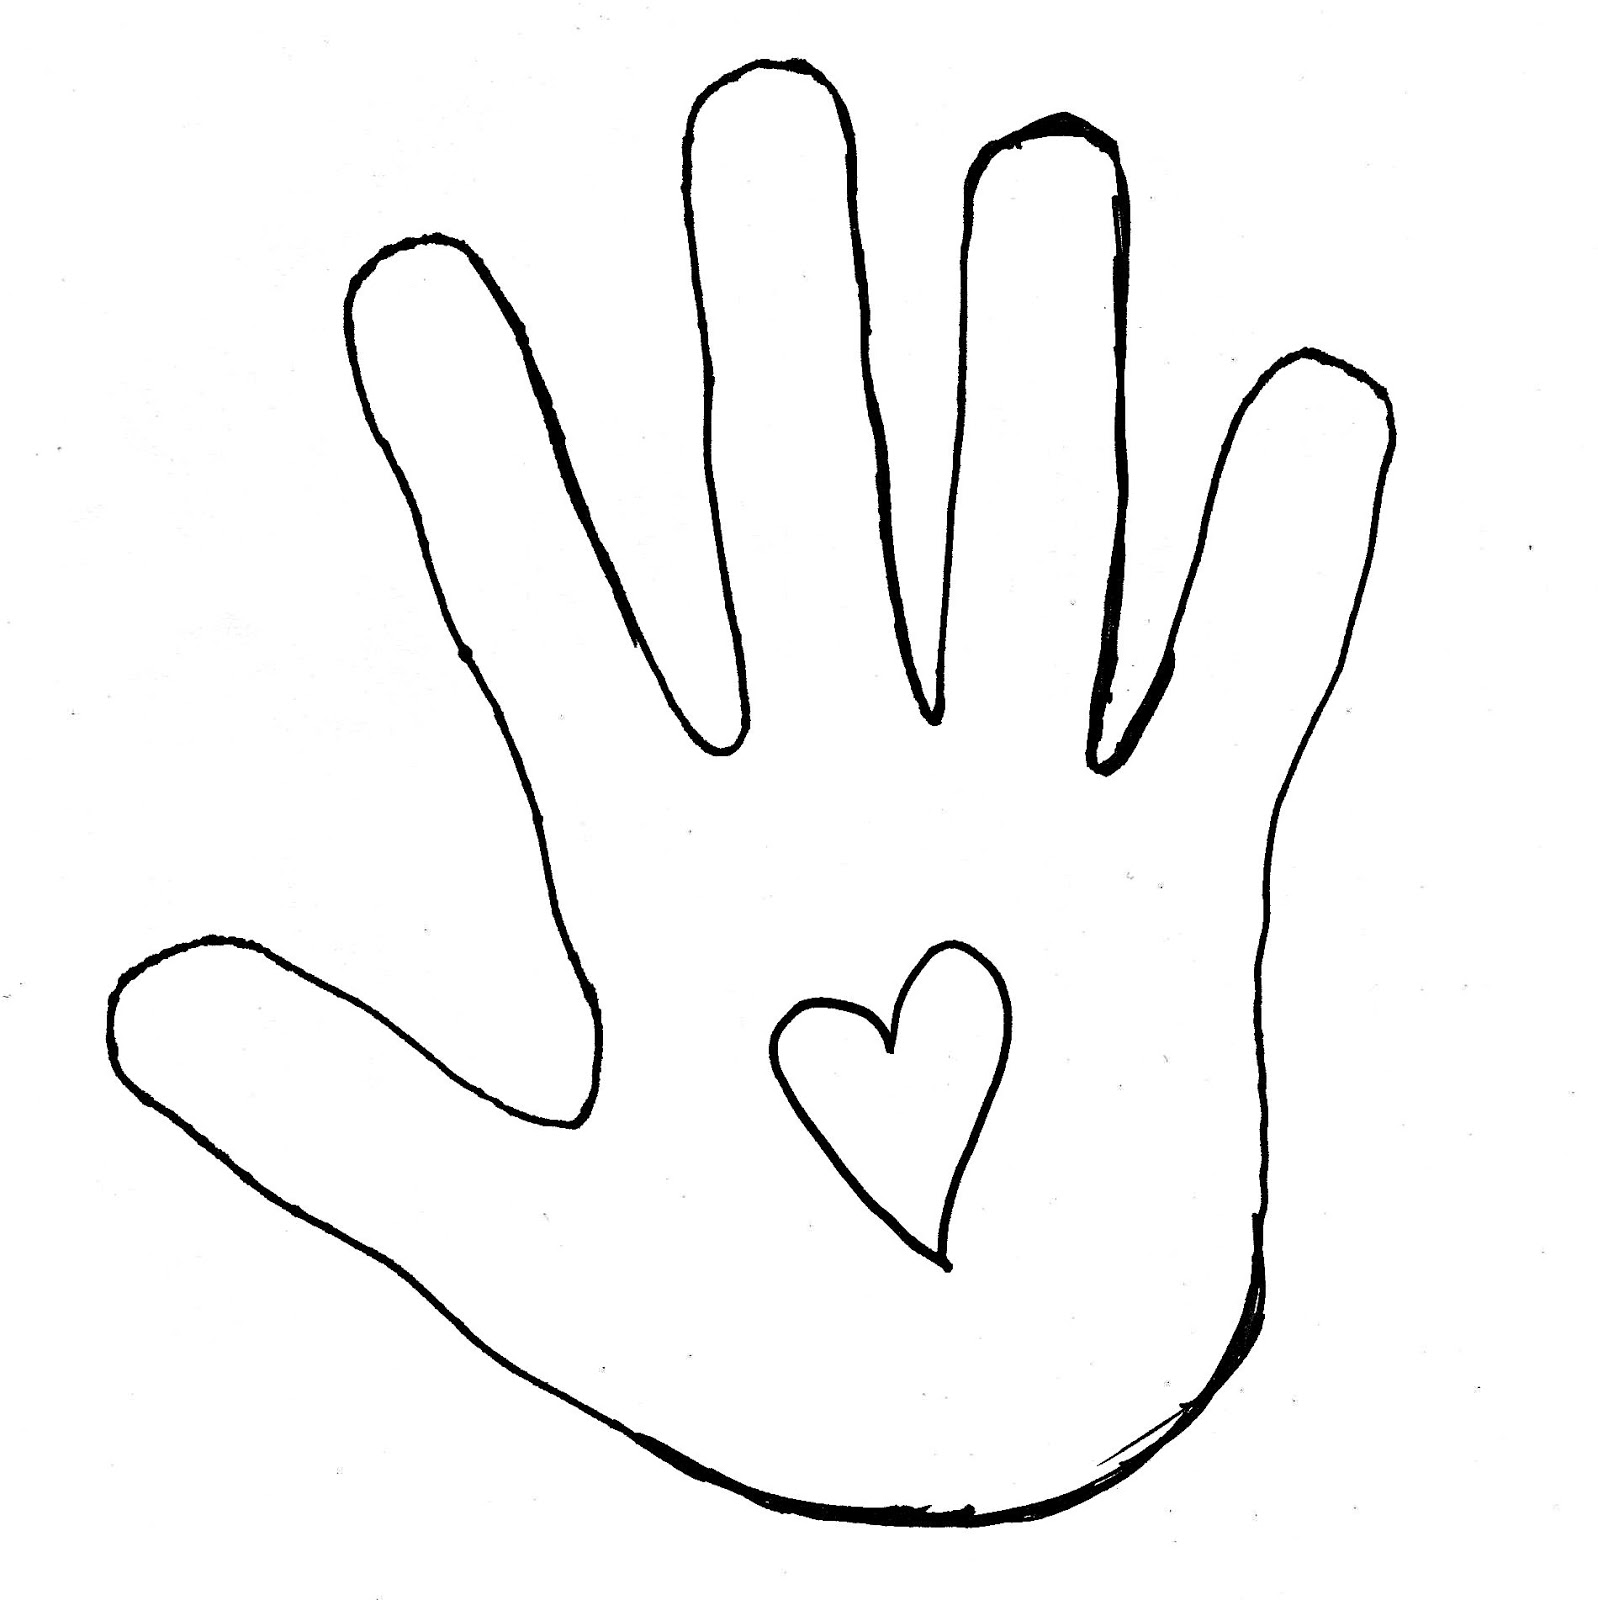 Gospel in addition Hand In Hand Clipart together with New friends clipart moreover transferhouse co as well Outstretched Hand Clipart. on helping hands clip art